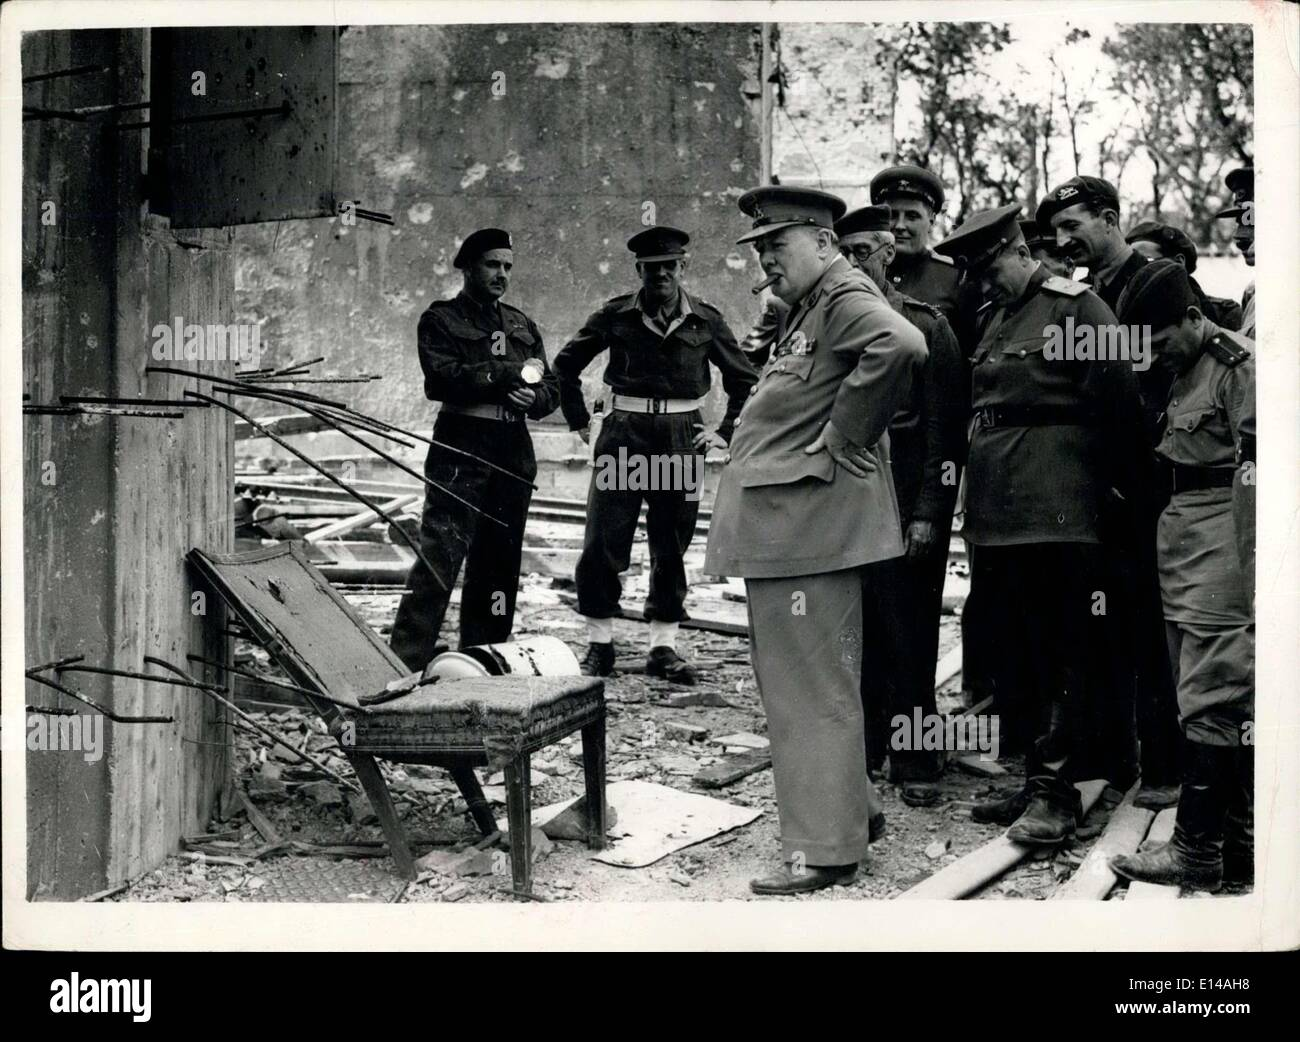 Apr. 17, 2012 - Churchill sees smashed Hitler's chair: During his tour of the Ruined Chancellery Mr. Churchill was shown by his - Stock Image